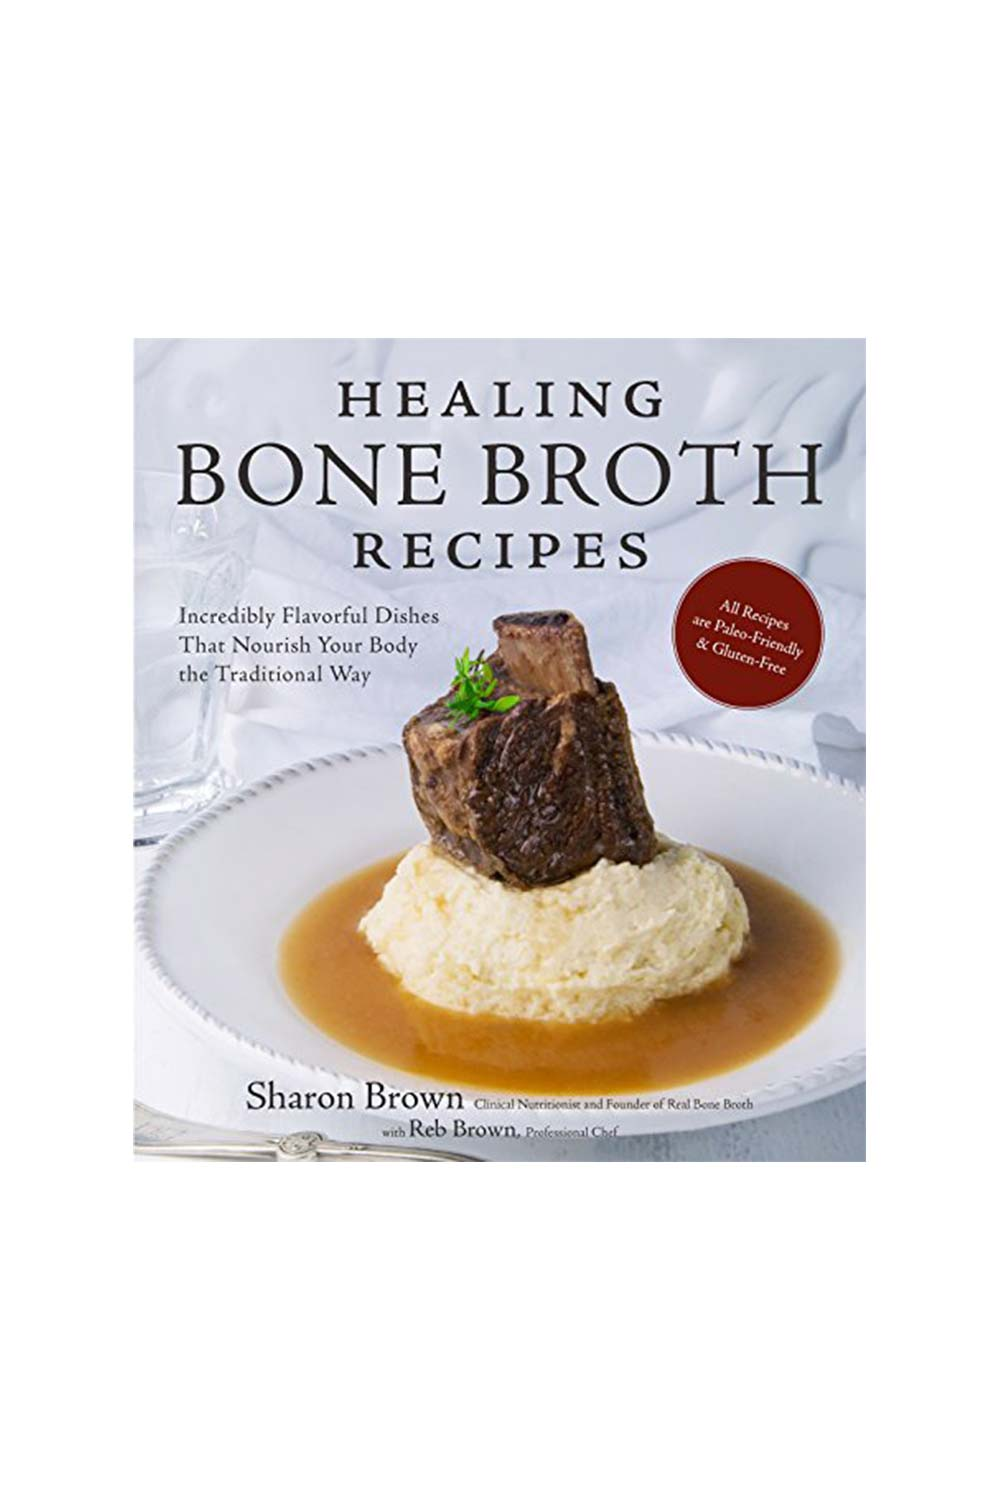 Healing Bone Broth Recipes Book - Kabana Shop